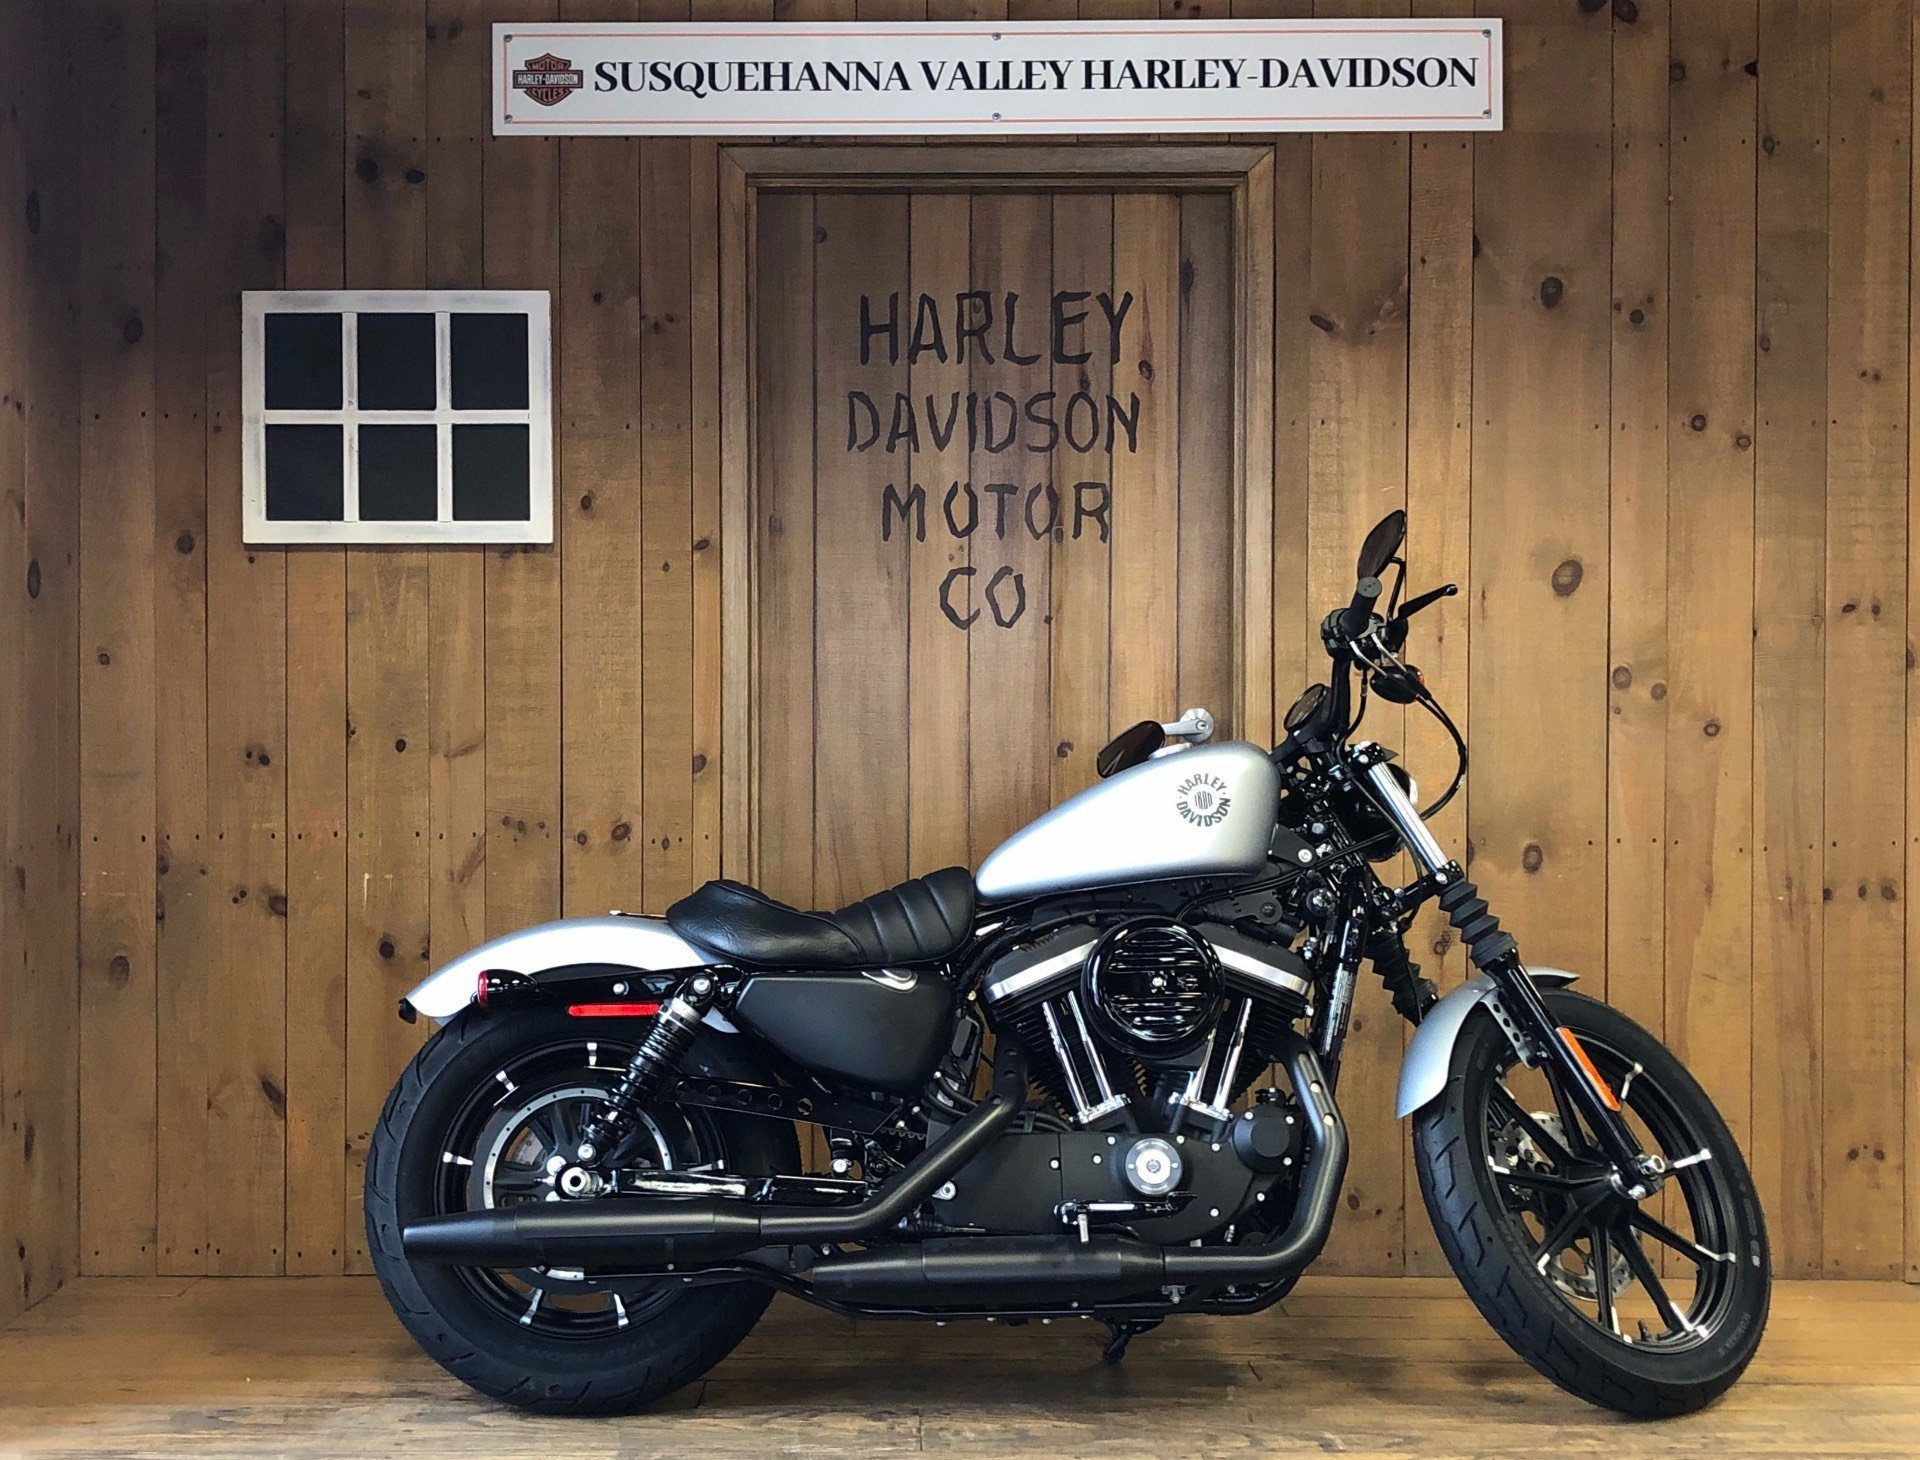 2020 Harley-Davidson XL883N in Harrisburg, Pennsylvania - Photo 1